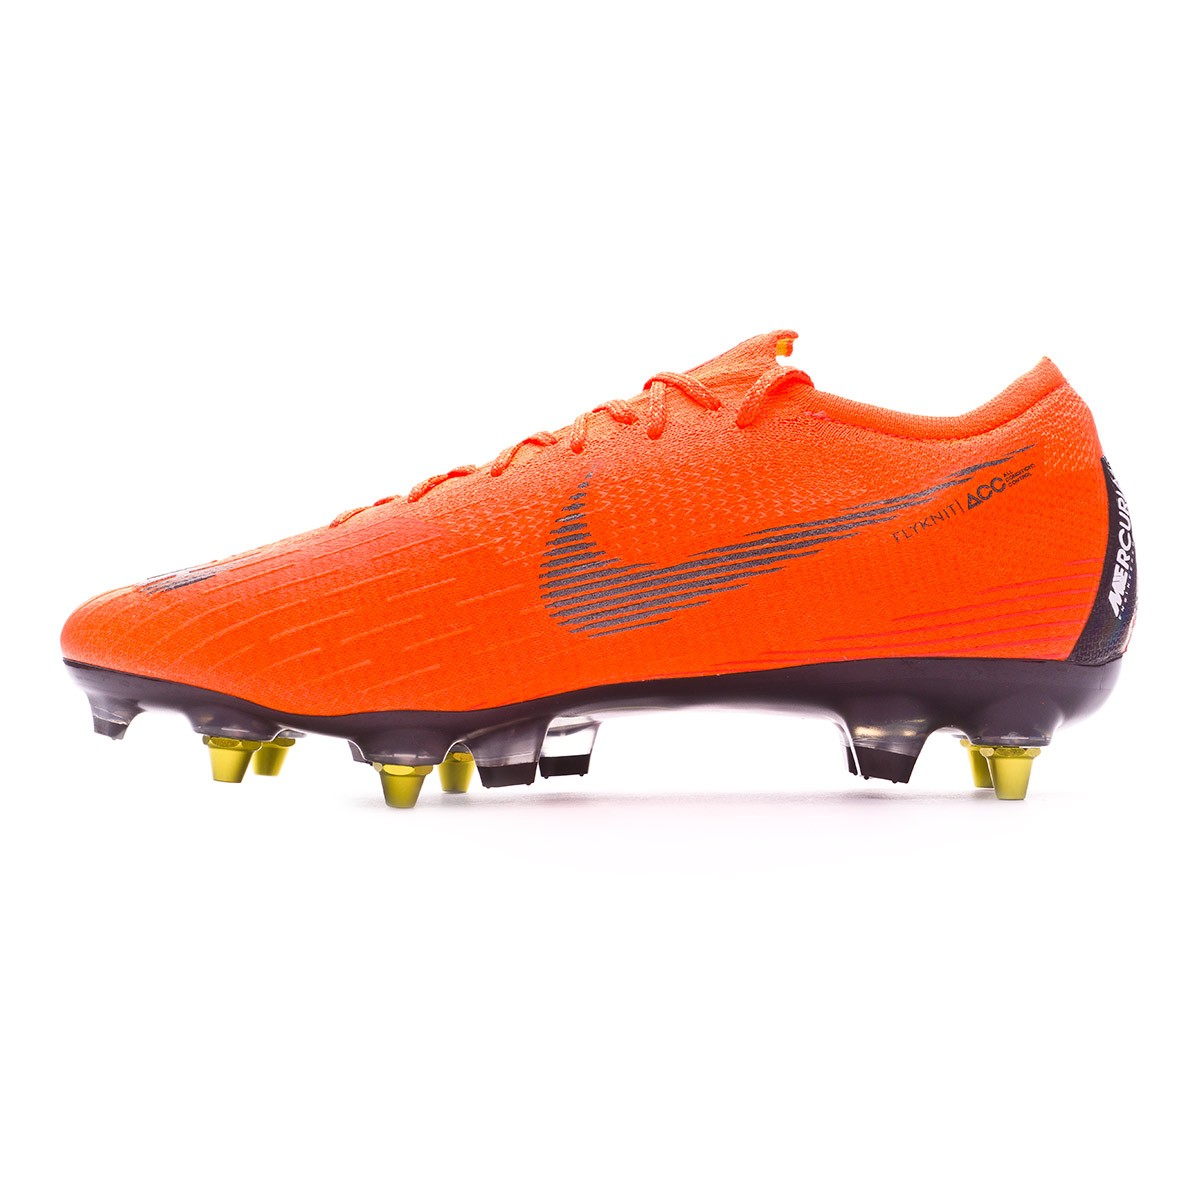 Sg Clog Orange Total Pro Scarpe Anti Vapor Nike Xii Mercurial Elite 4Wx4vX8Pqw